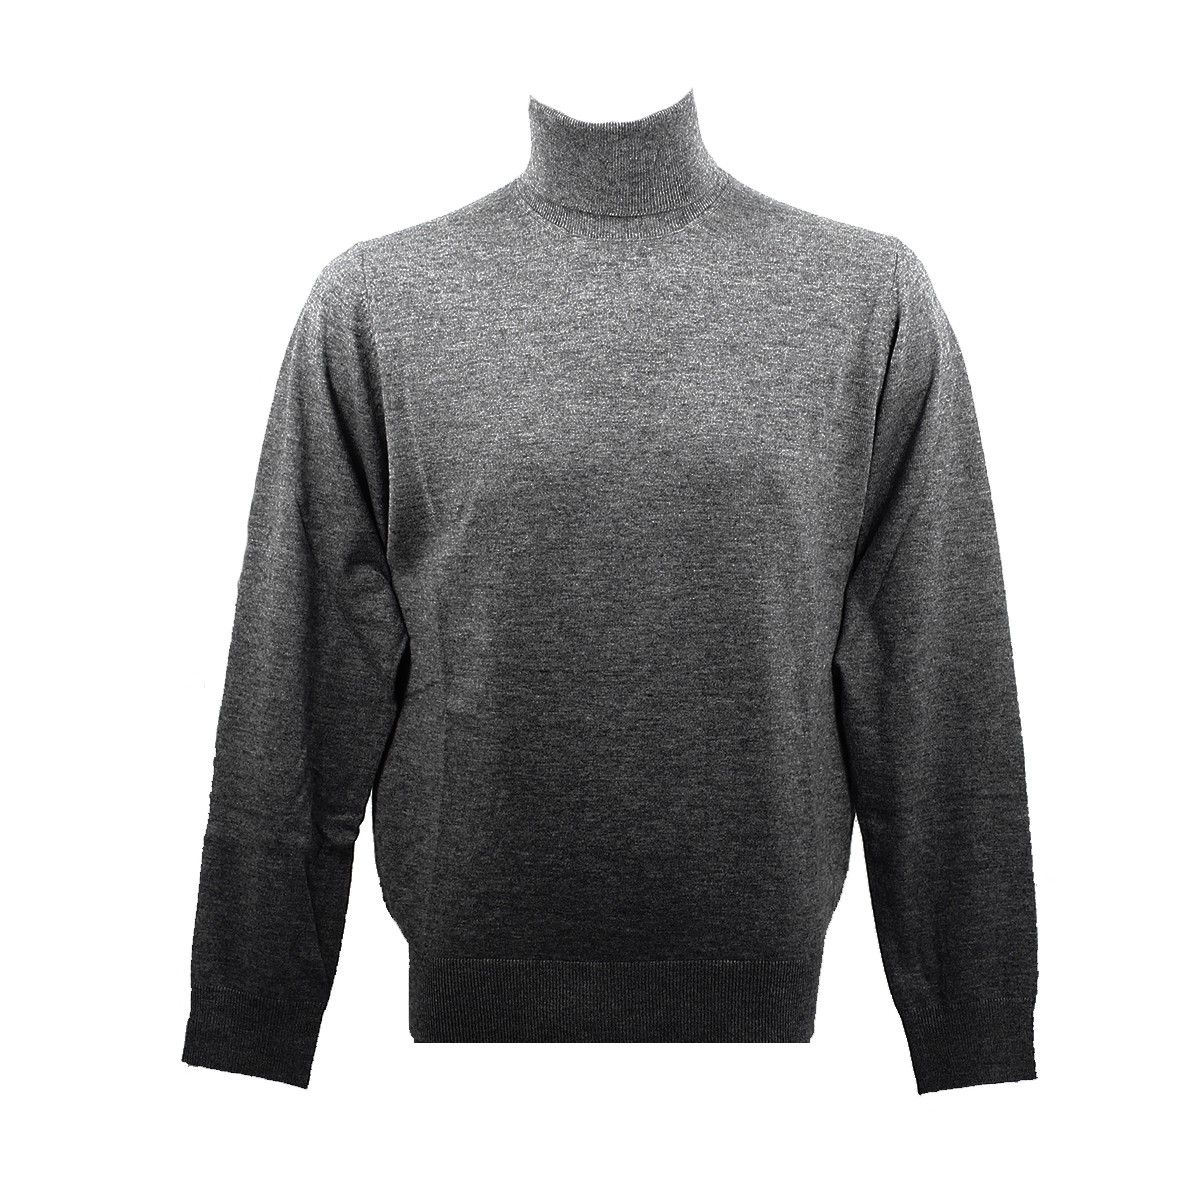 Pull Real Cashmere COL ROULE - Ref. IUS108154--DOLCEVITA. Loading zoom deabe48f8e6